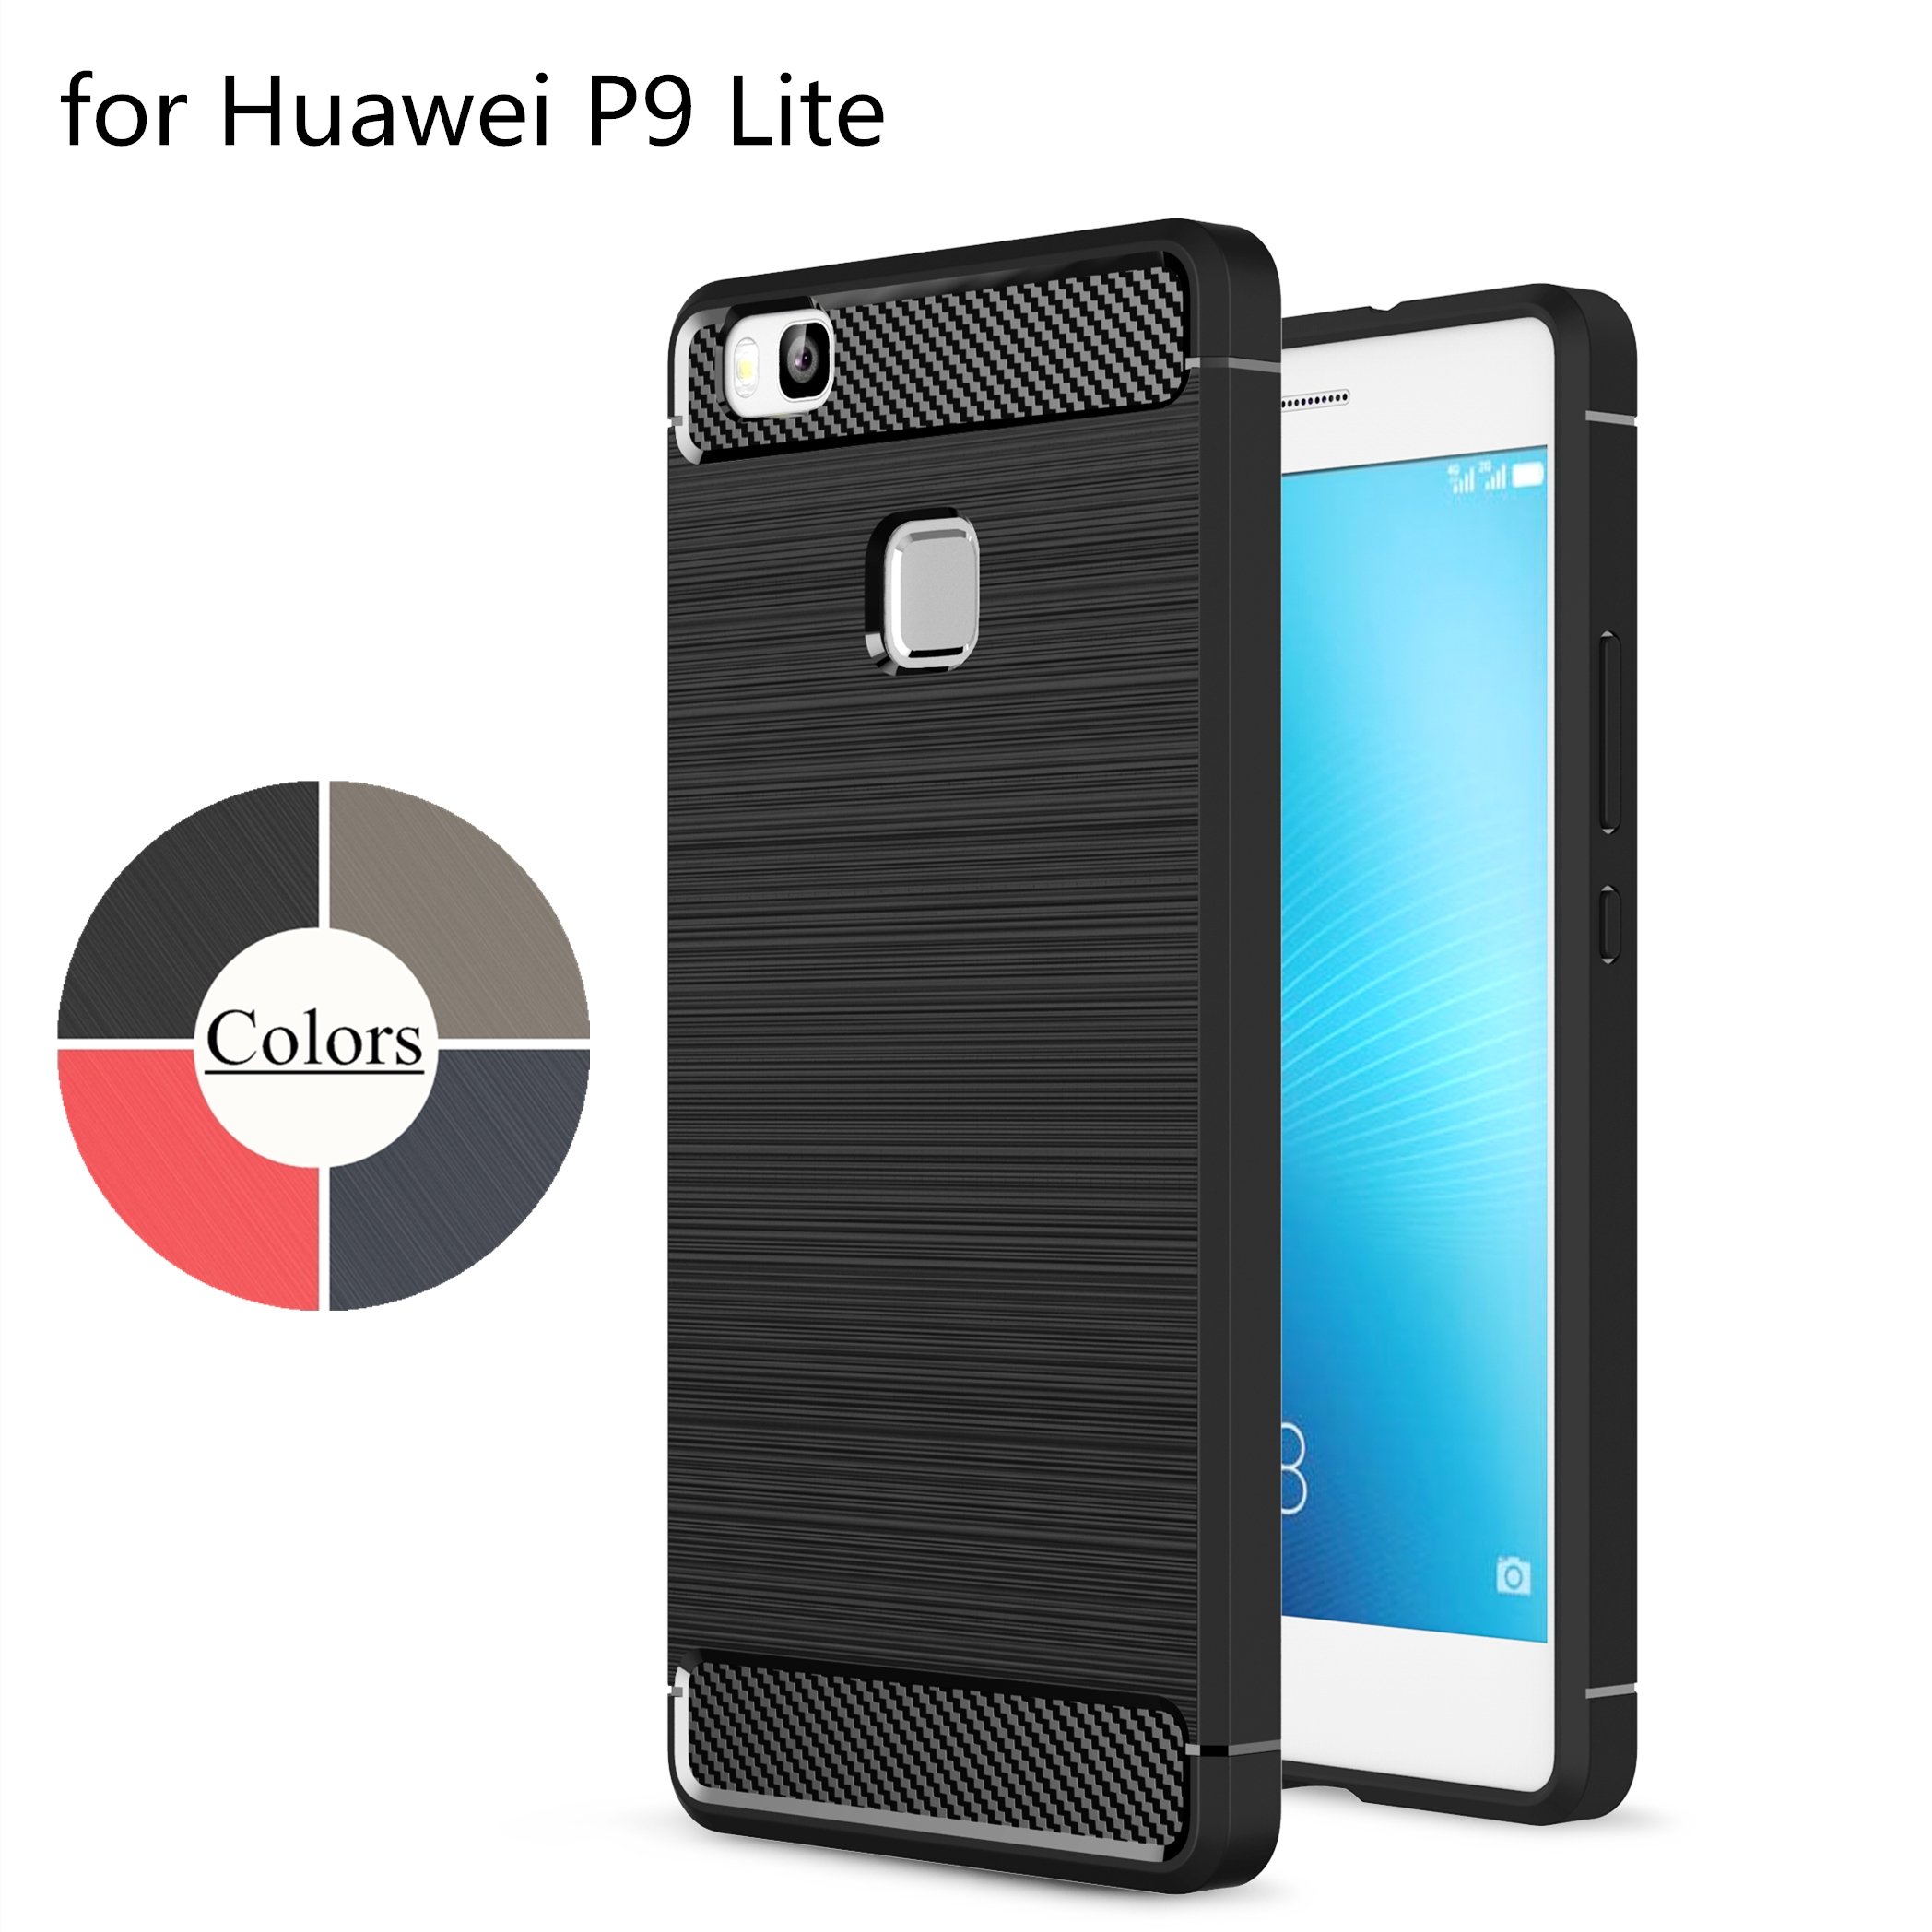 online retailer 83c5d 6c6c9 US $3.79 5% OFF|Case for Huawei P9 Lite TPU Silicone Case Ultra thin Soft  Cover Matte Feel Phone Case Rugged Armor Case-in Half-wrapped Case from ...